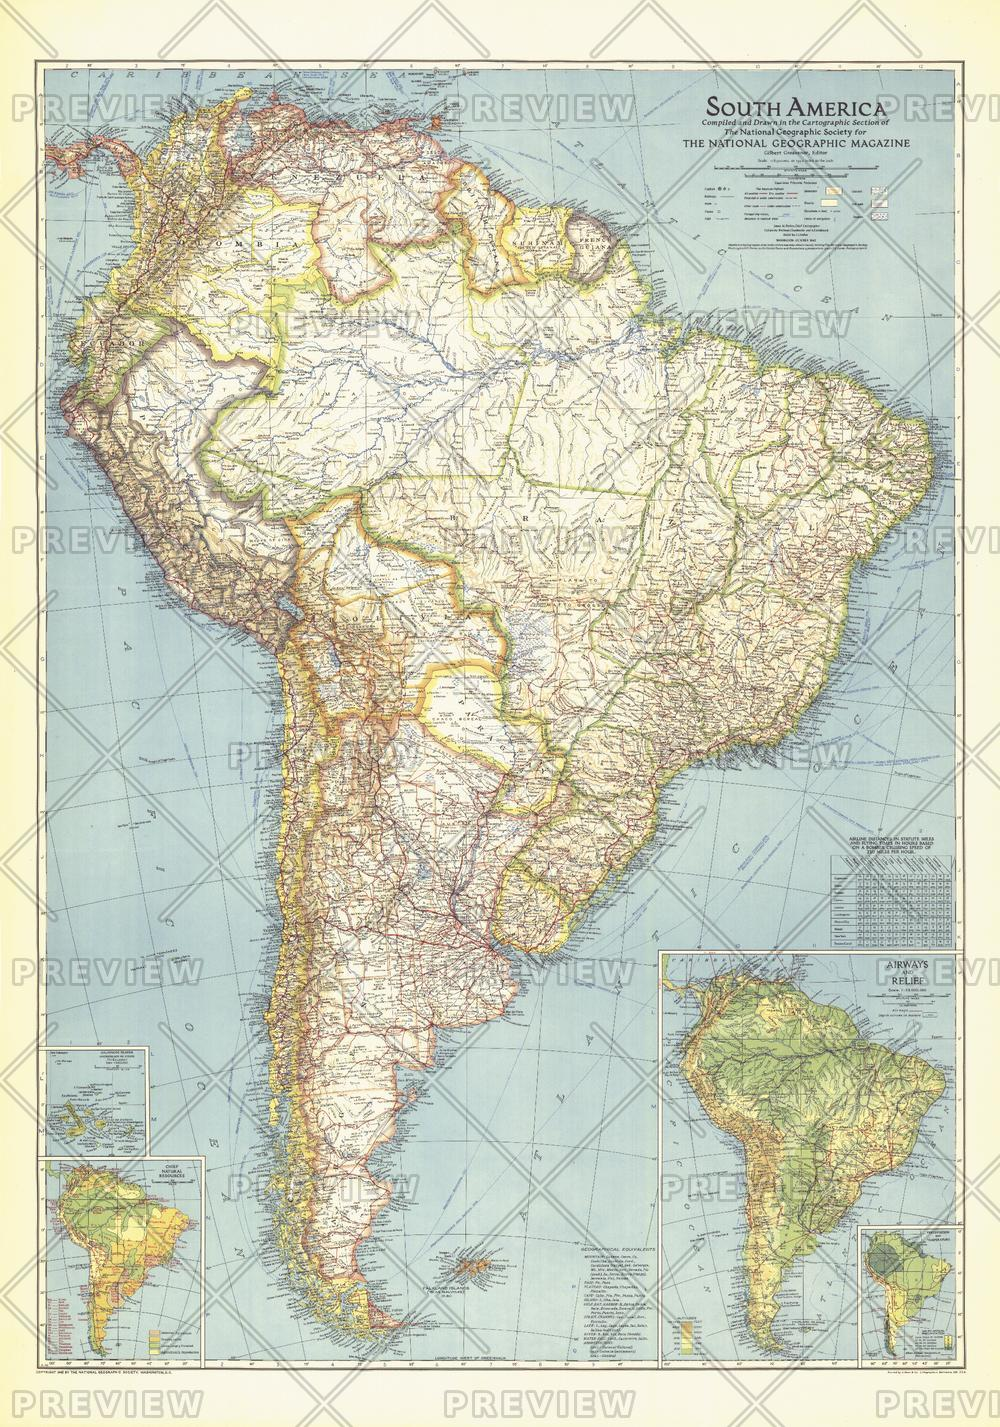 South America Published 1942